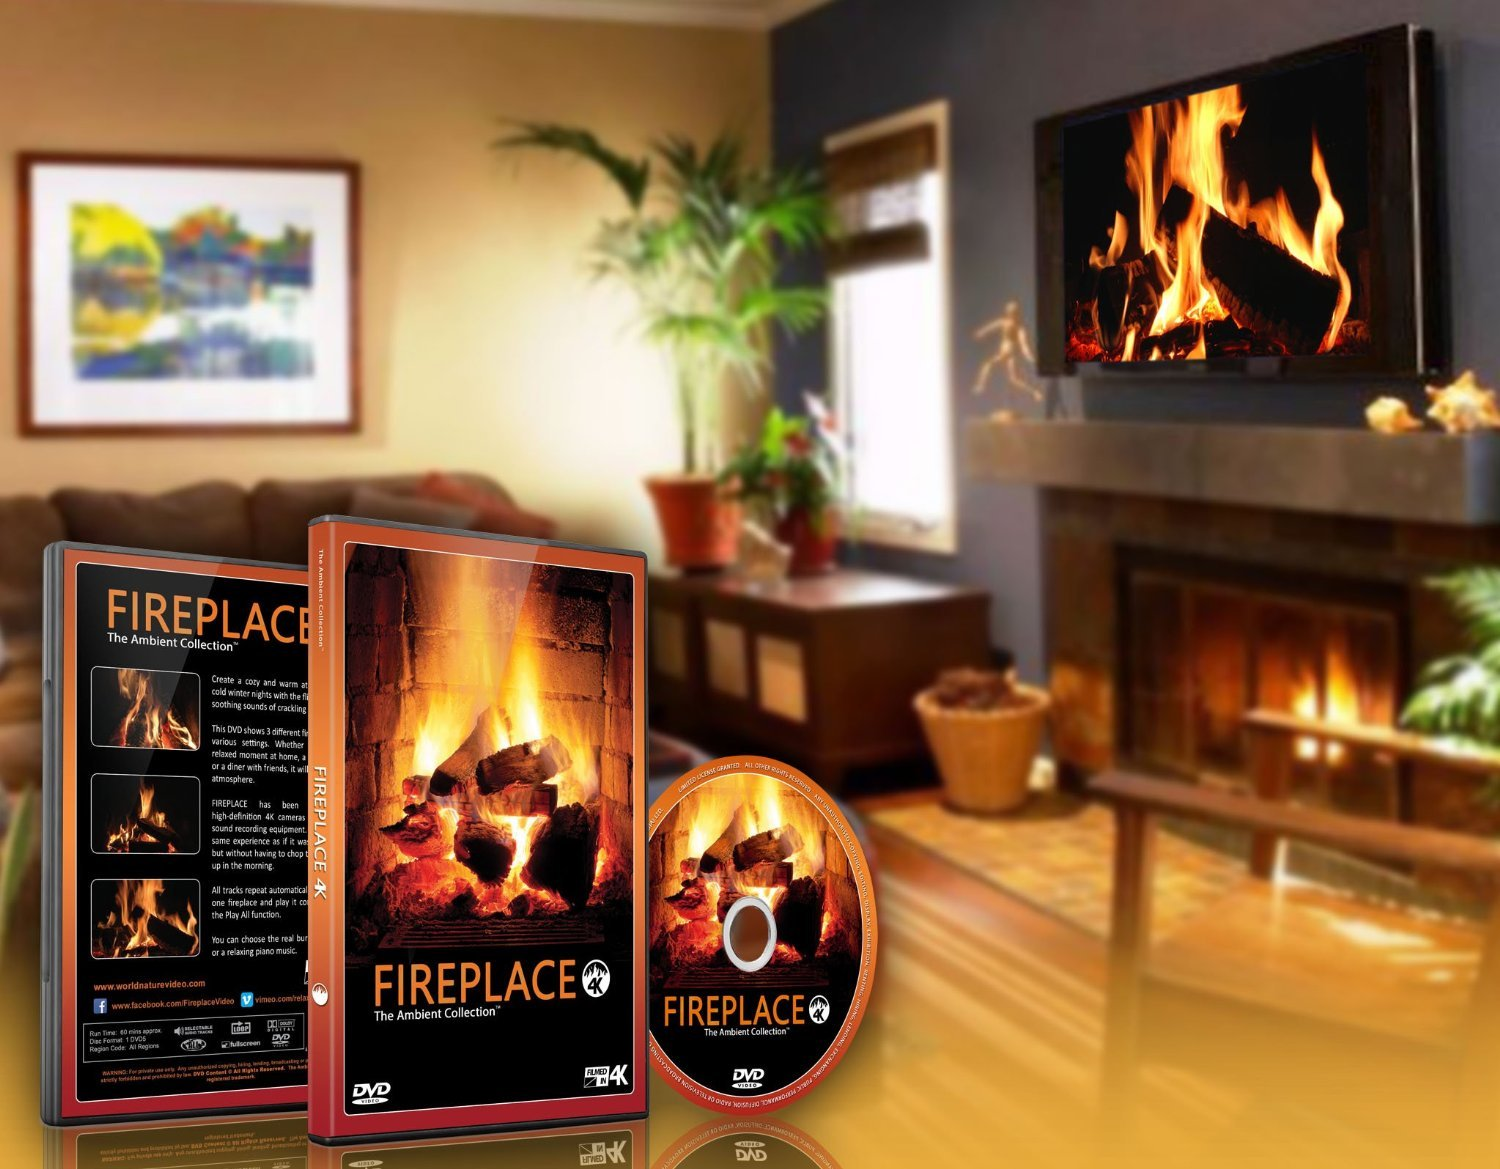 amazon com fire dvd fireplace filmed in hd of long wood fires